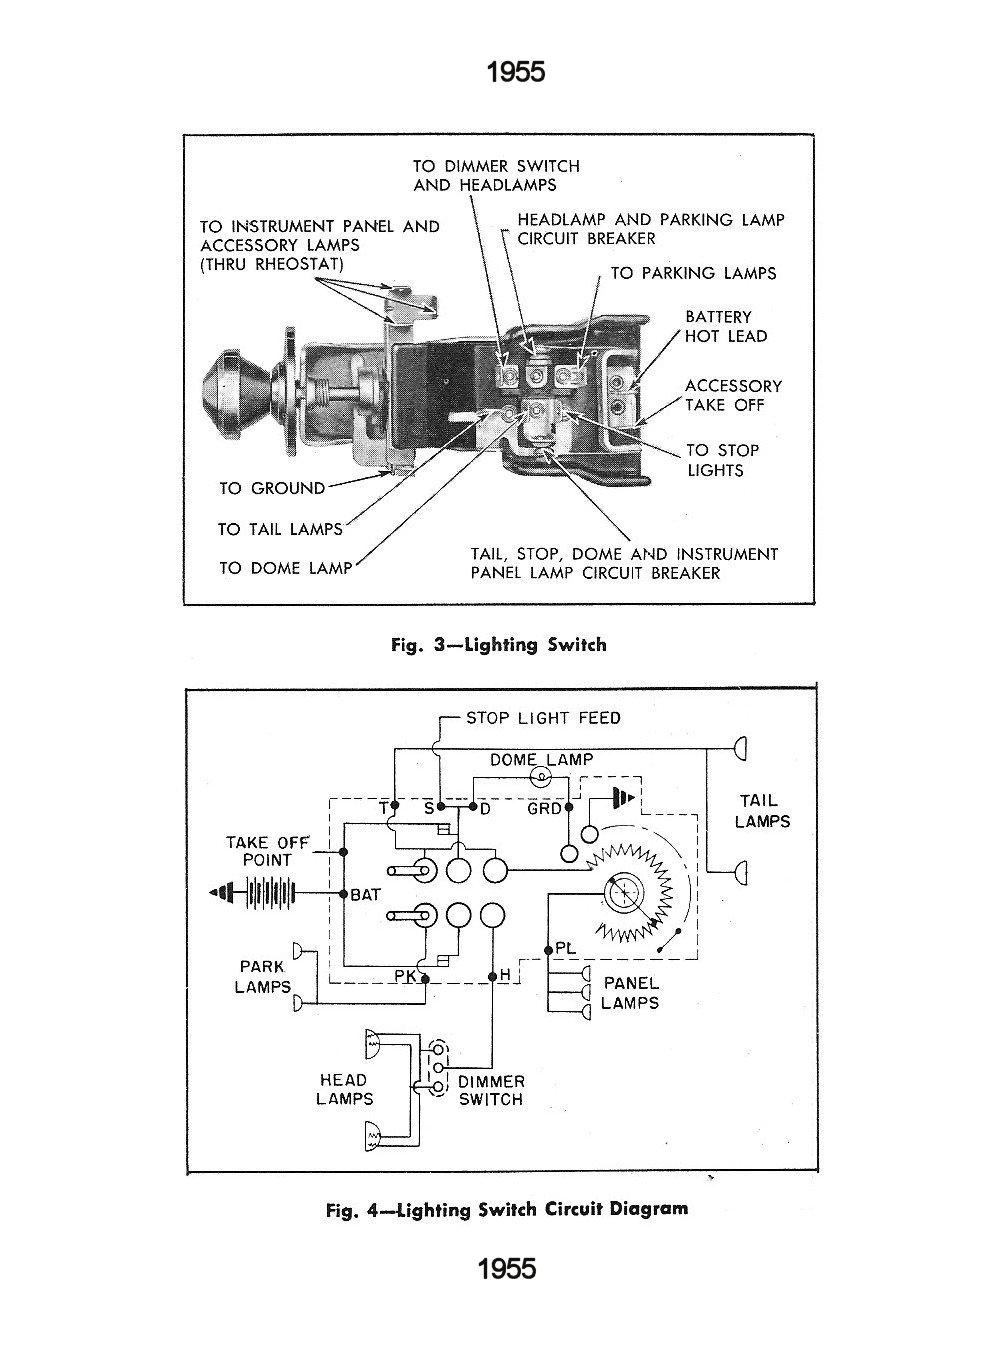 chevy headlight switch wiring as well chevy headlight switch wiringheadlight switch wiring diagram on chevrolet headlight switch wiring chevy headlight switch wiring as well chevy headlight switch wiring